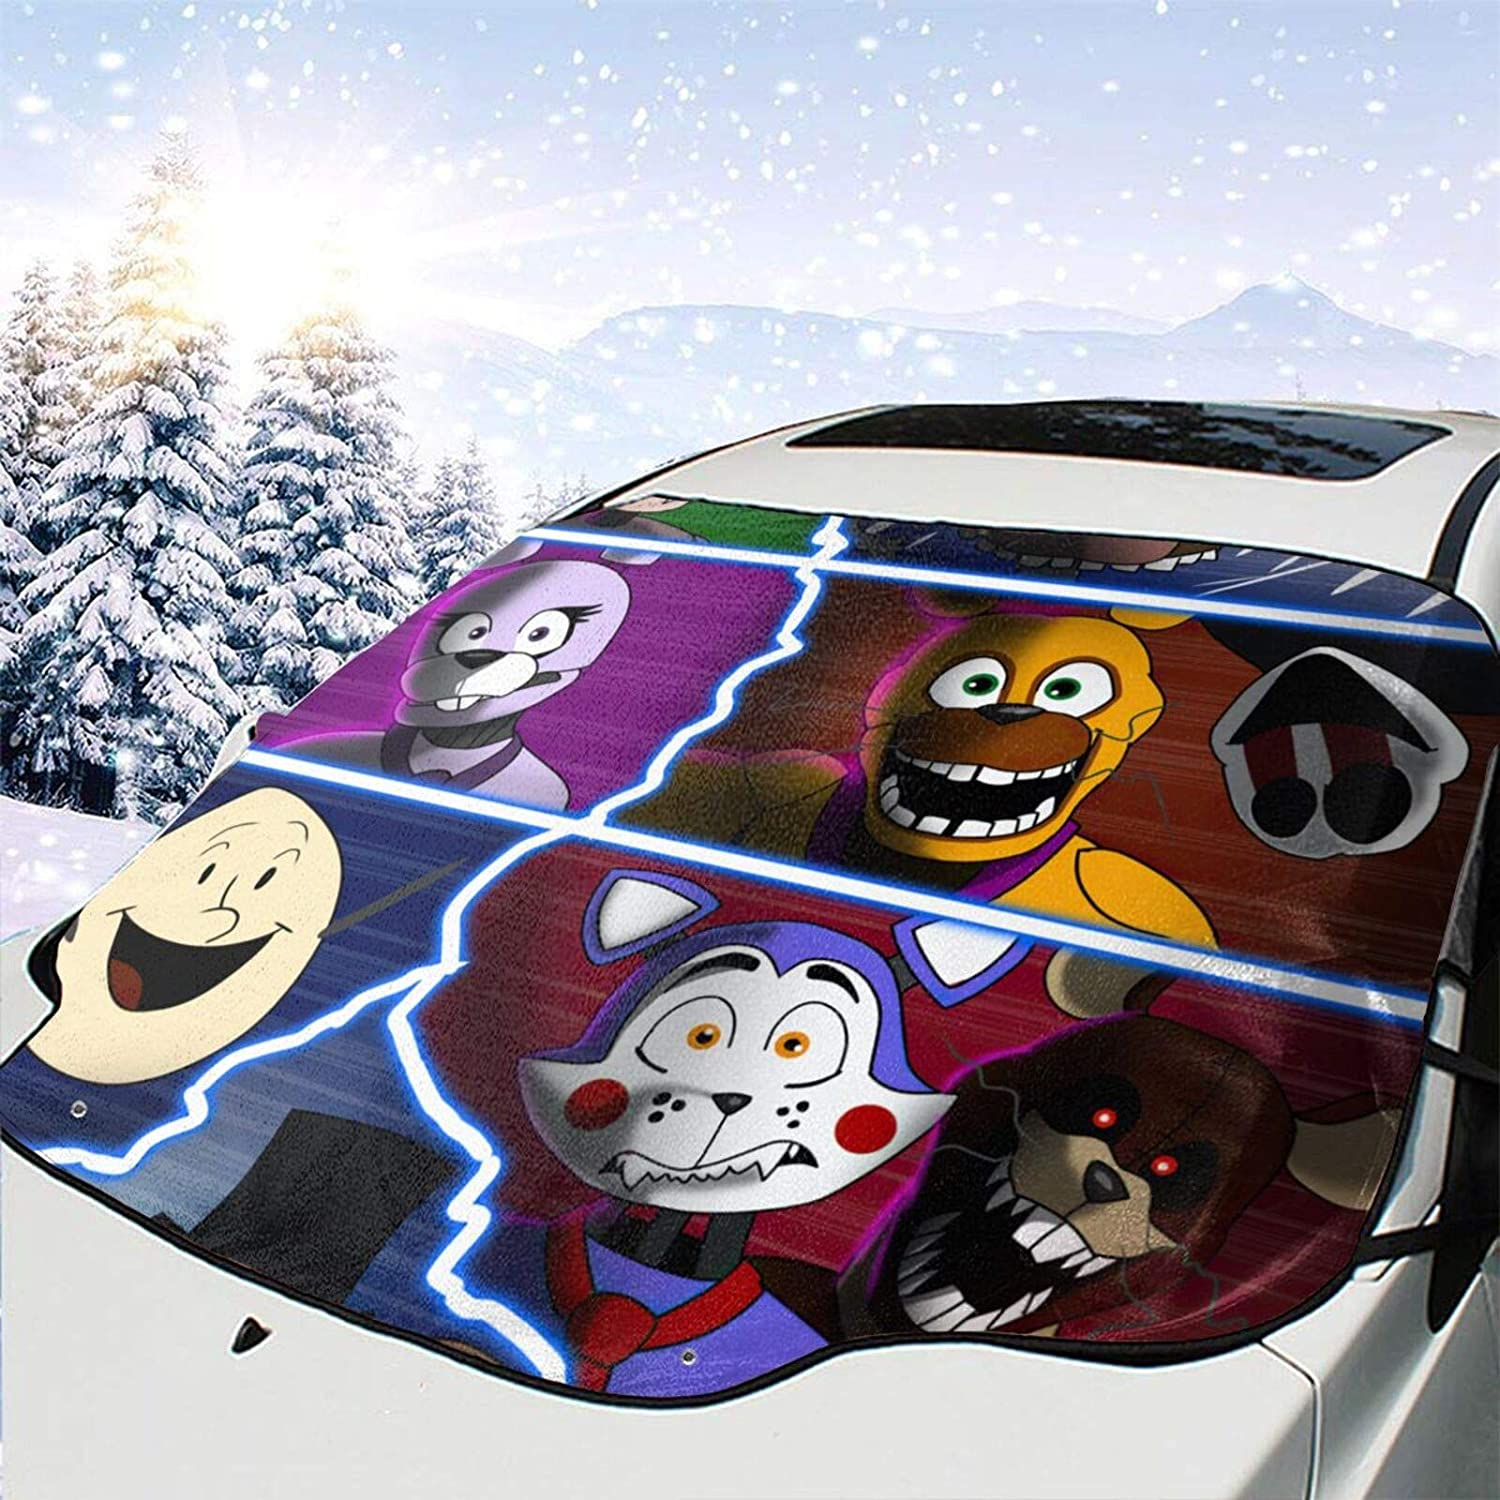 AMYHERFORD Nights Ranking integrated 1st place at Fressy Windshield Wind Cover Visor Car Snow depot